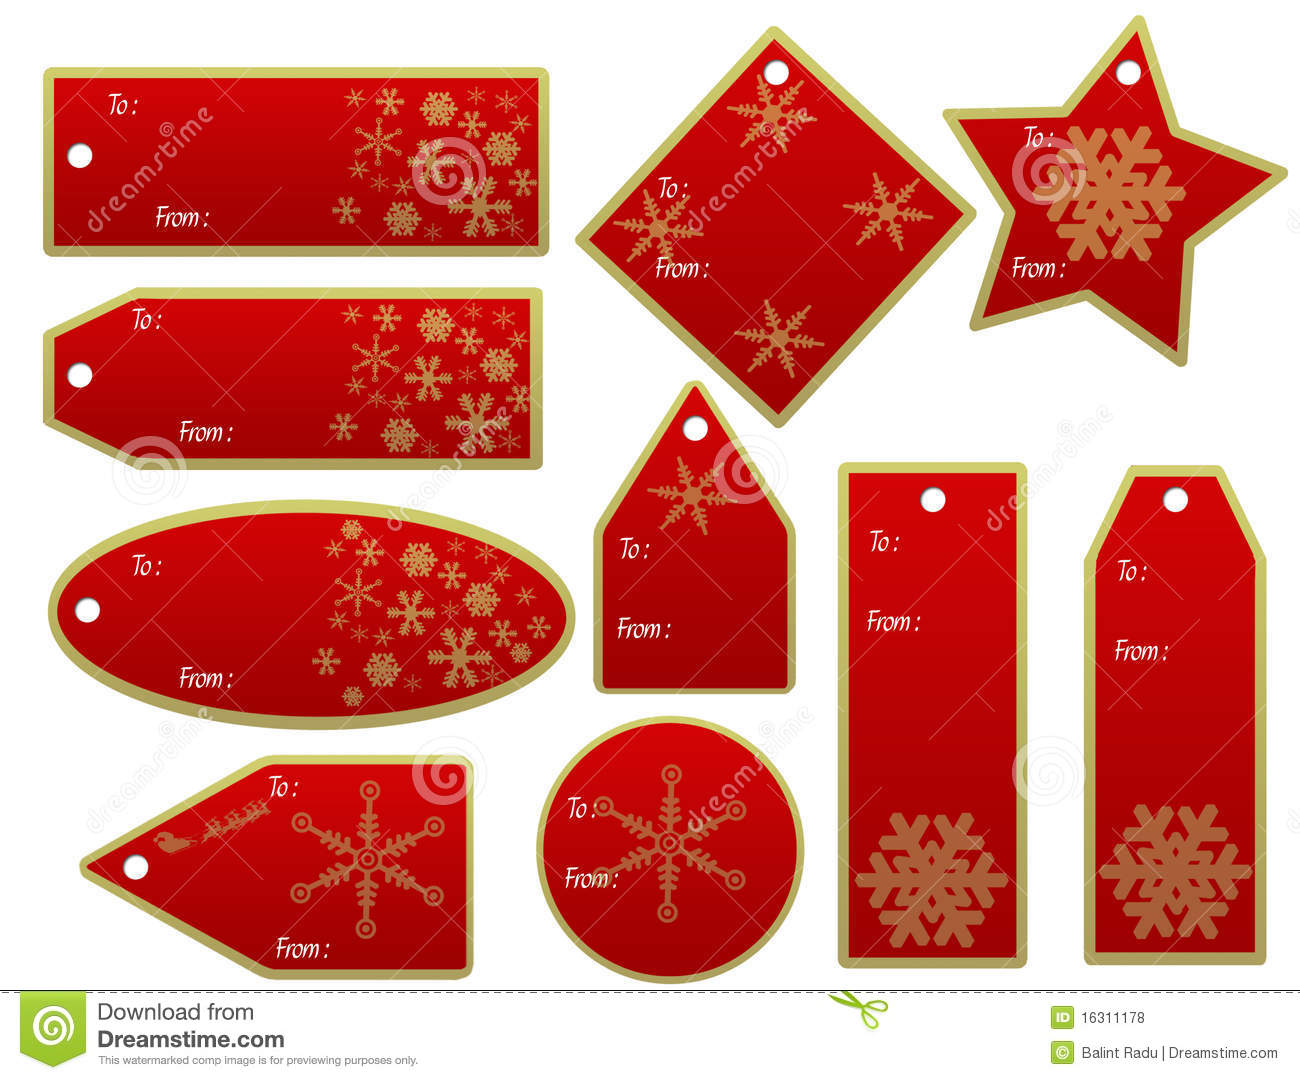 Christmas gift tags free download